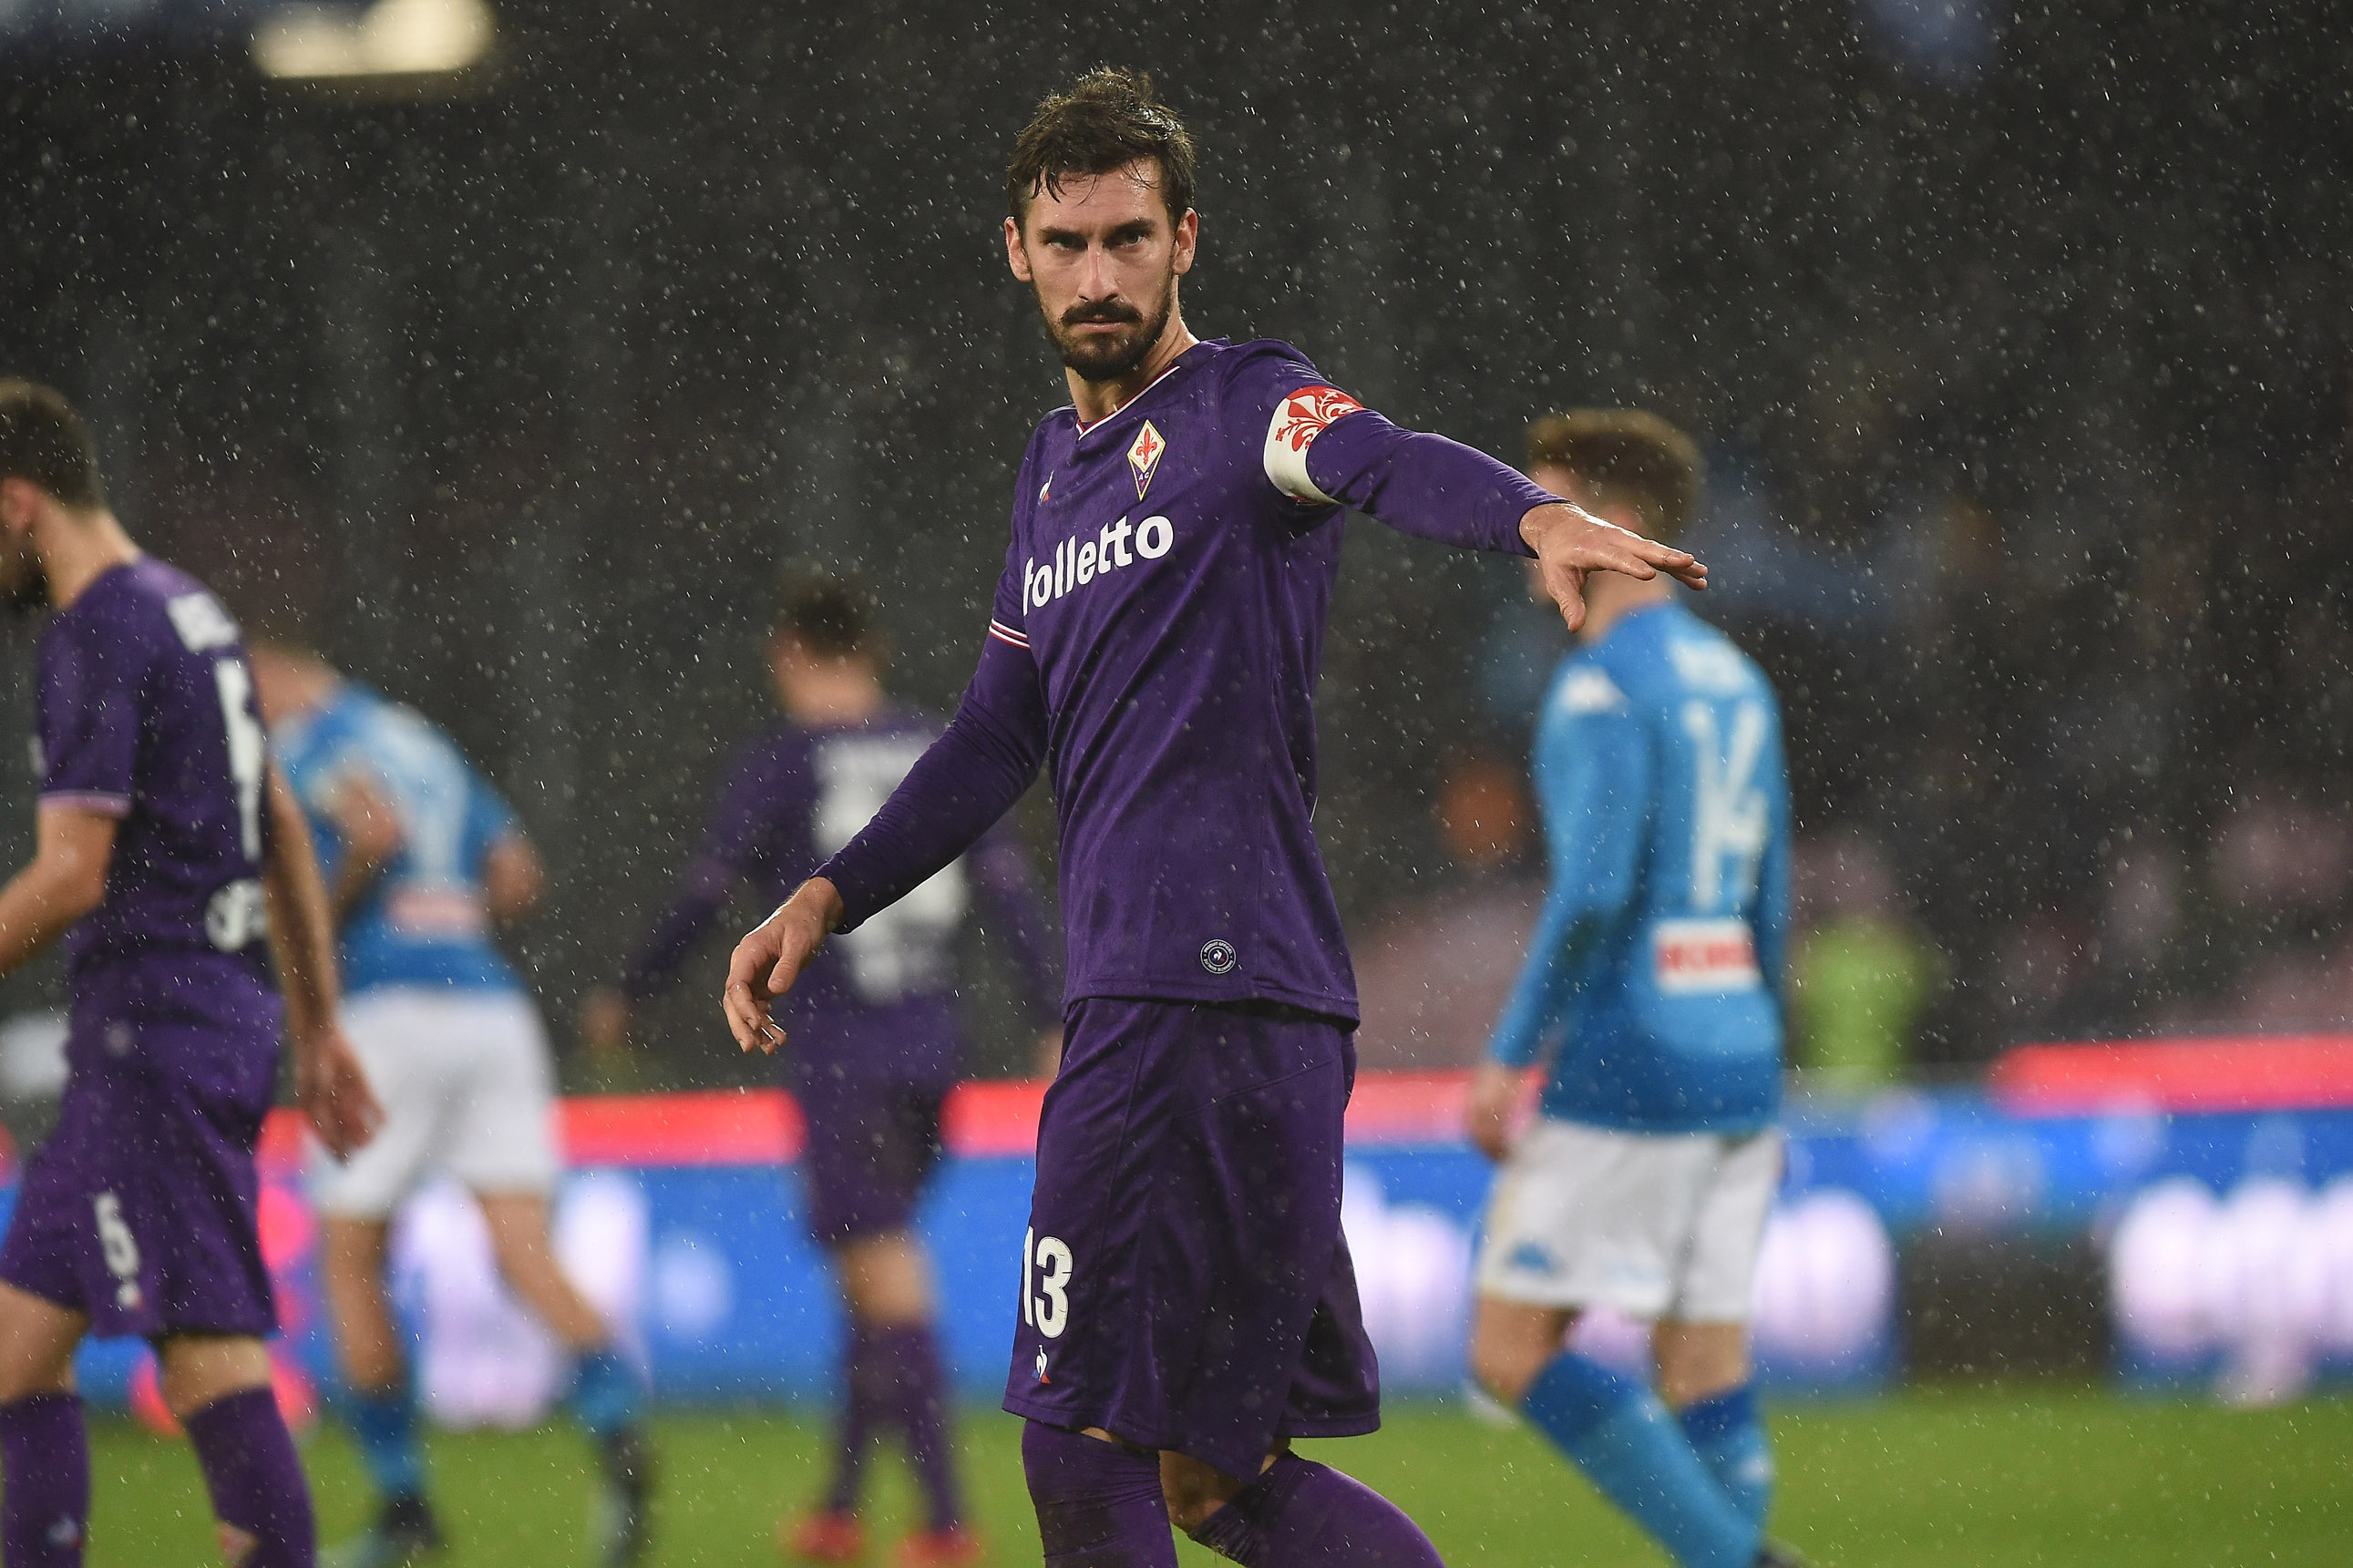 Top Italian football captain Davide Astori dies unexpectedly